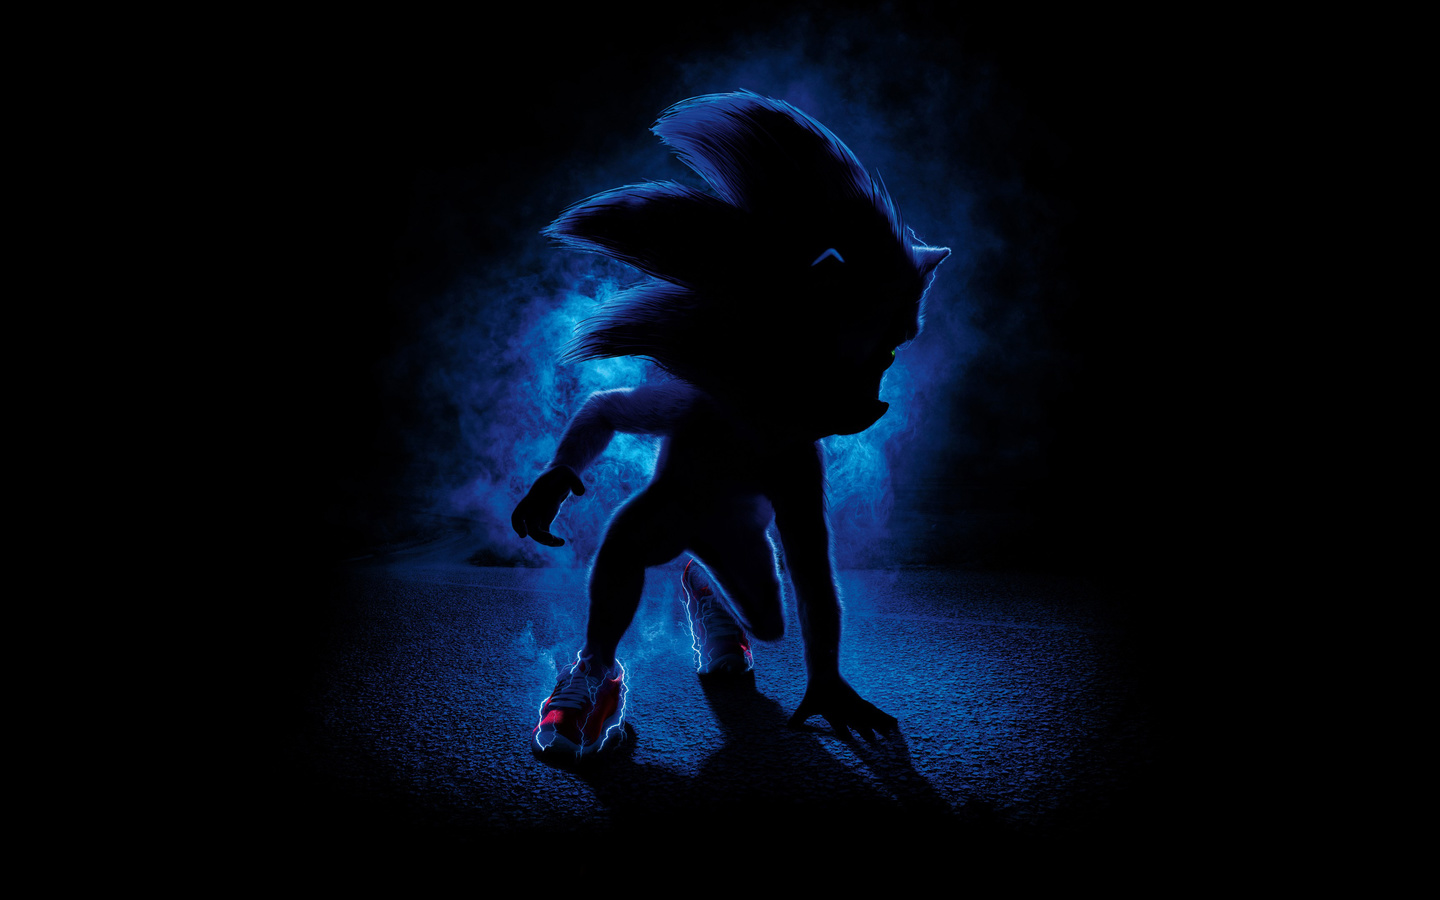 sonic the hedgehog, 2019